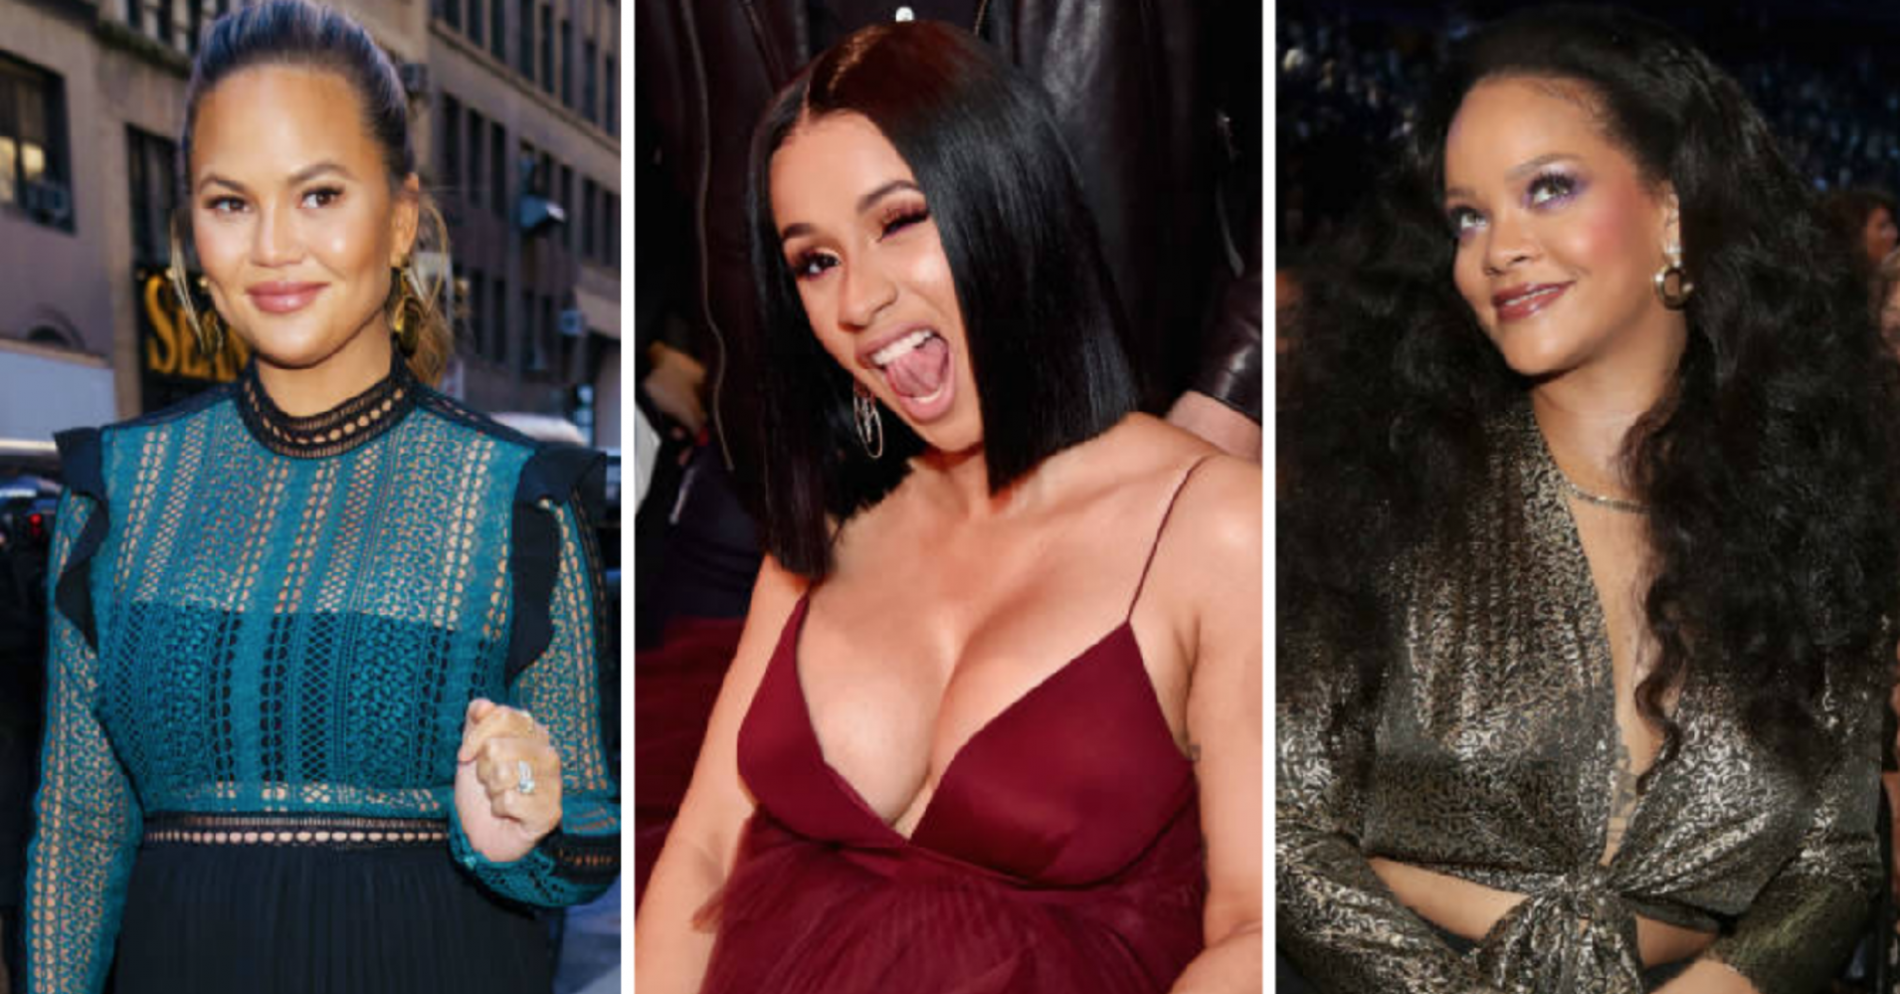 Cardi B Wants To Have A Threesome With Chrissy Teigen and Rihanna